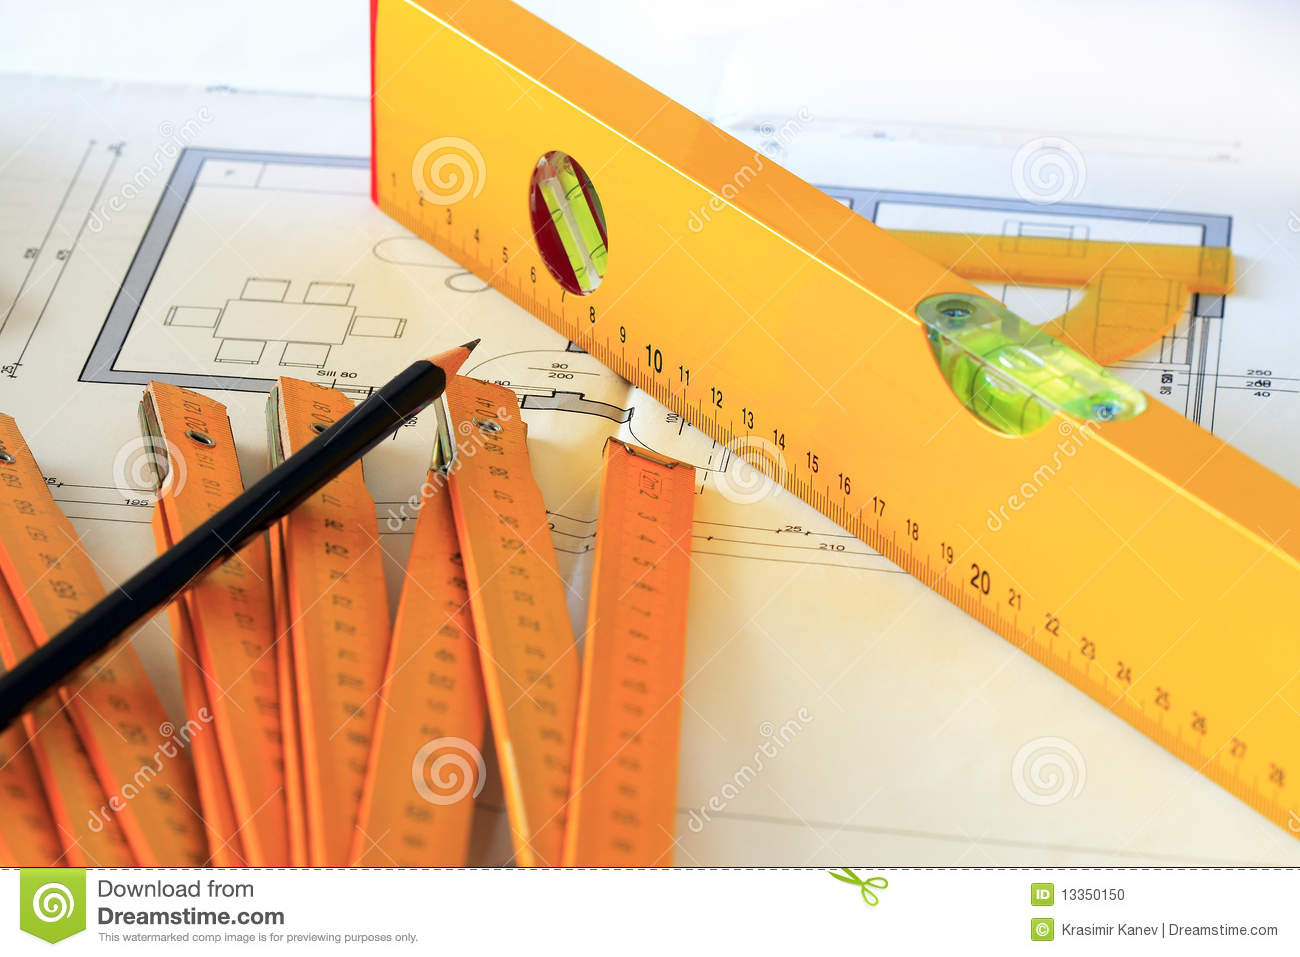 Architectural Drawings And Tools Stock Photo Image 13350150